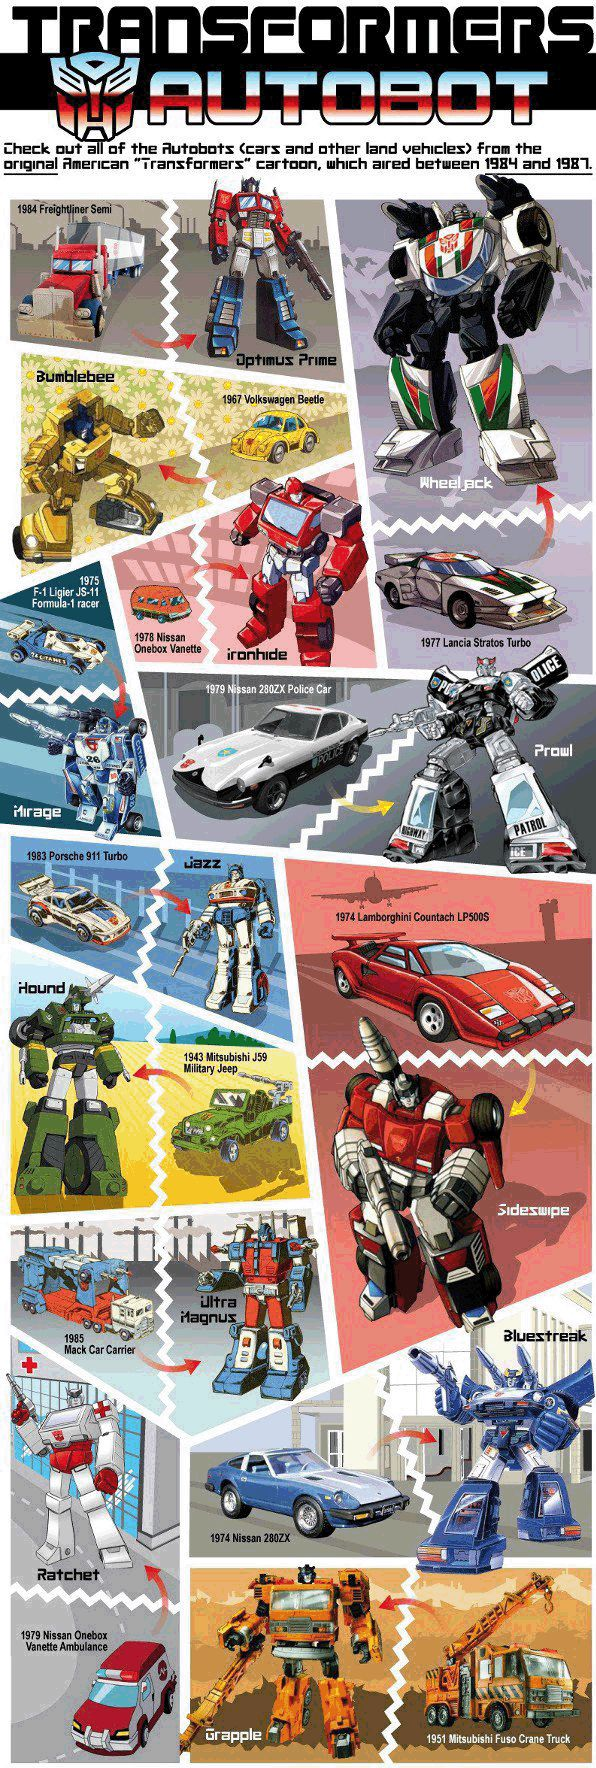 Transformers Car To Robot Infographic